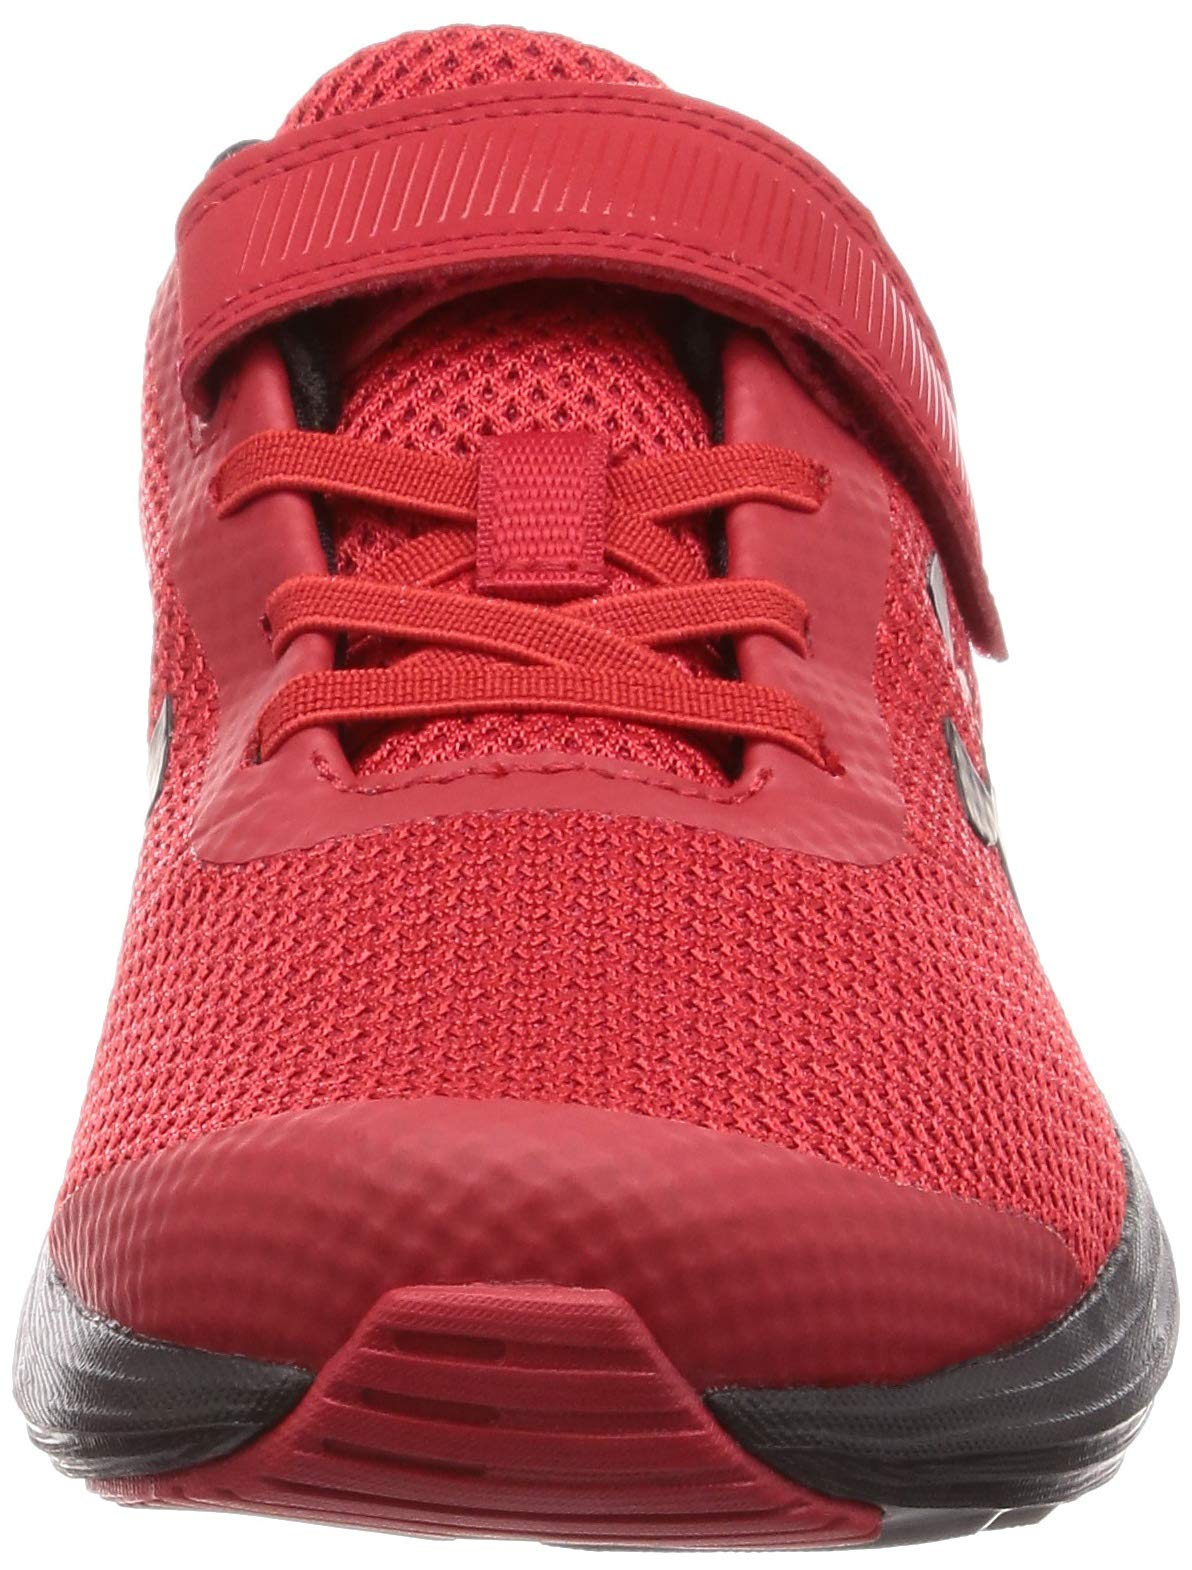 Under Armour Boys' Pre School Surge RN Alternate Closure Sneaker, Red (600)/Black, 3 by Under Armour (Image #4)